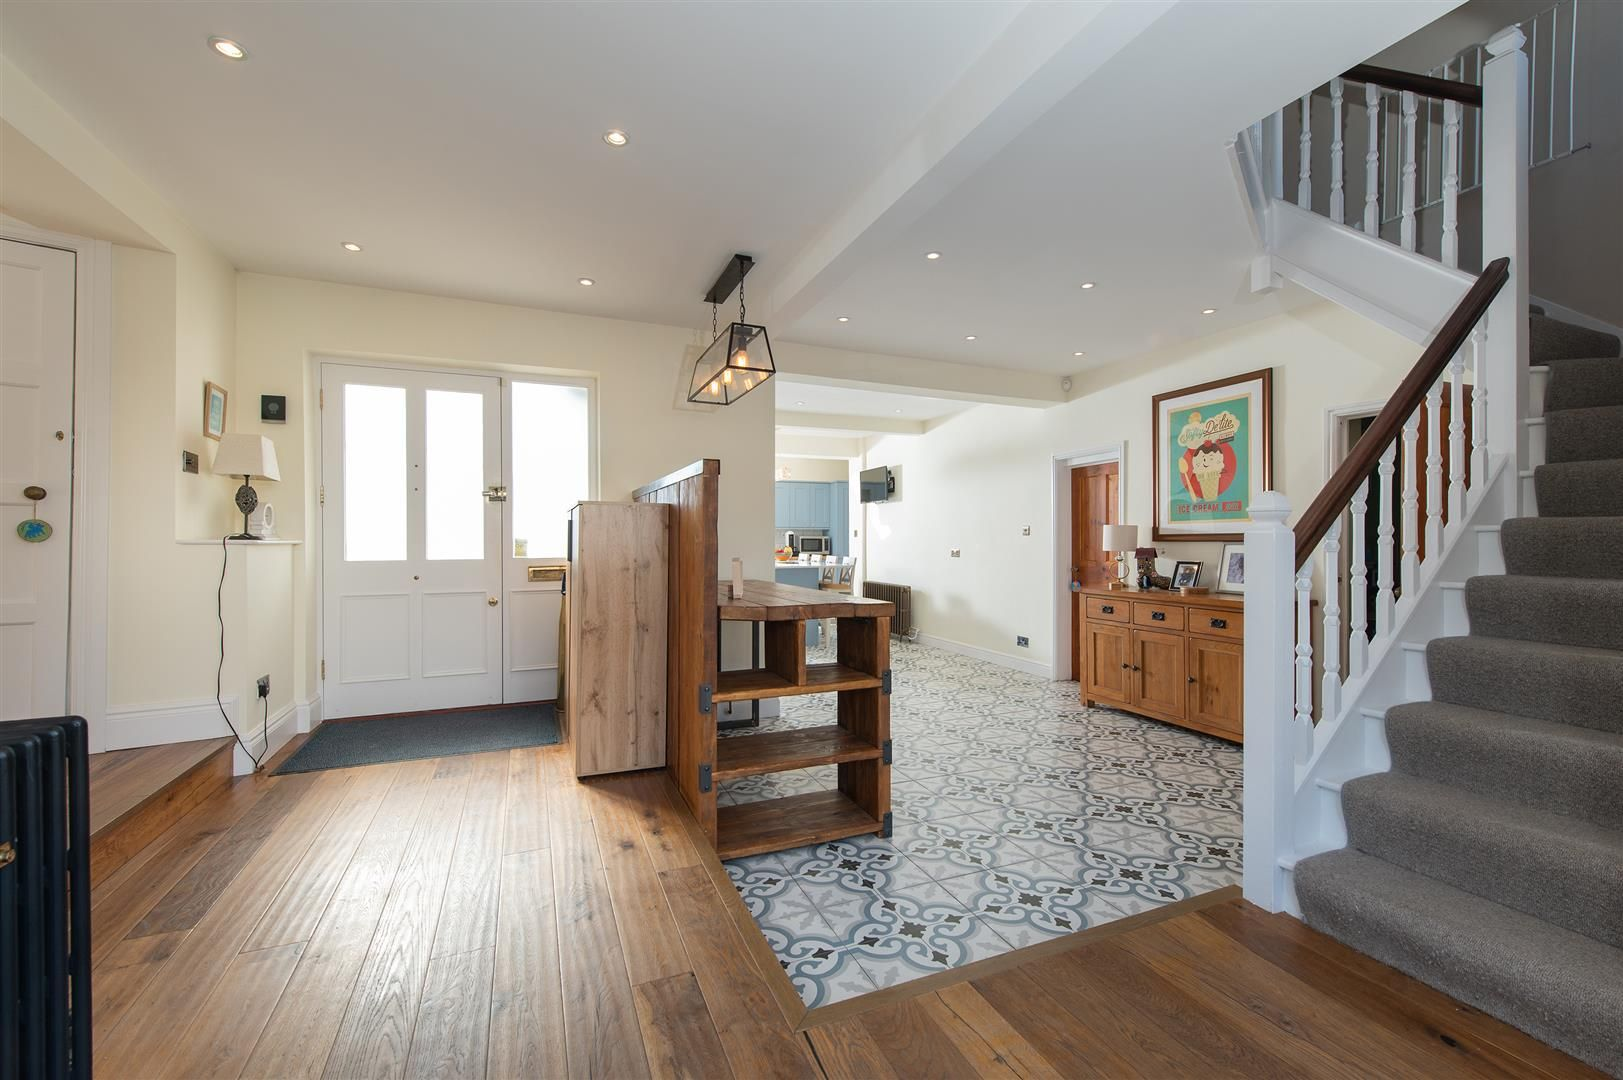 4 bed detached for sale in Blakedown 6